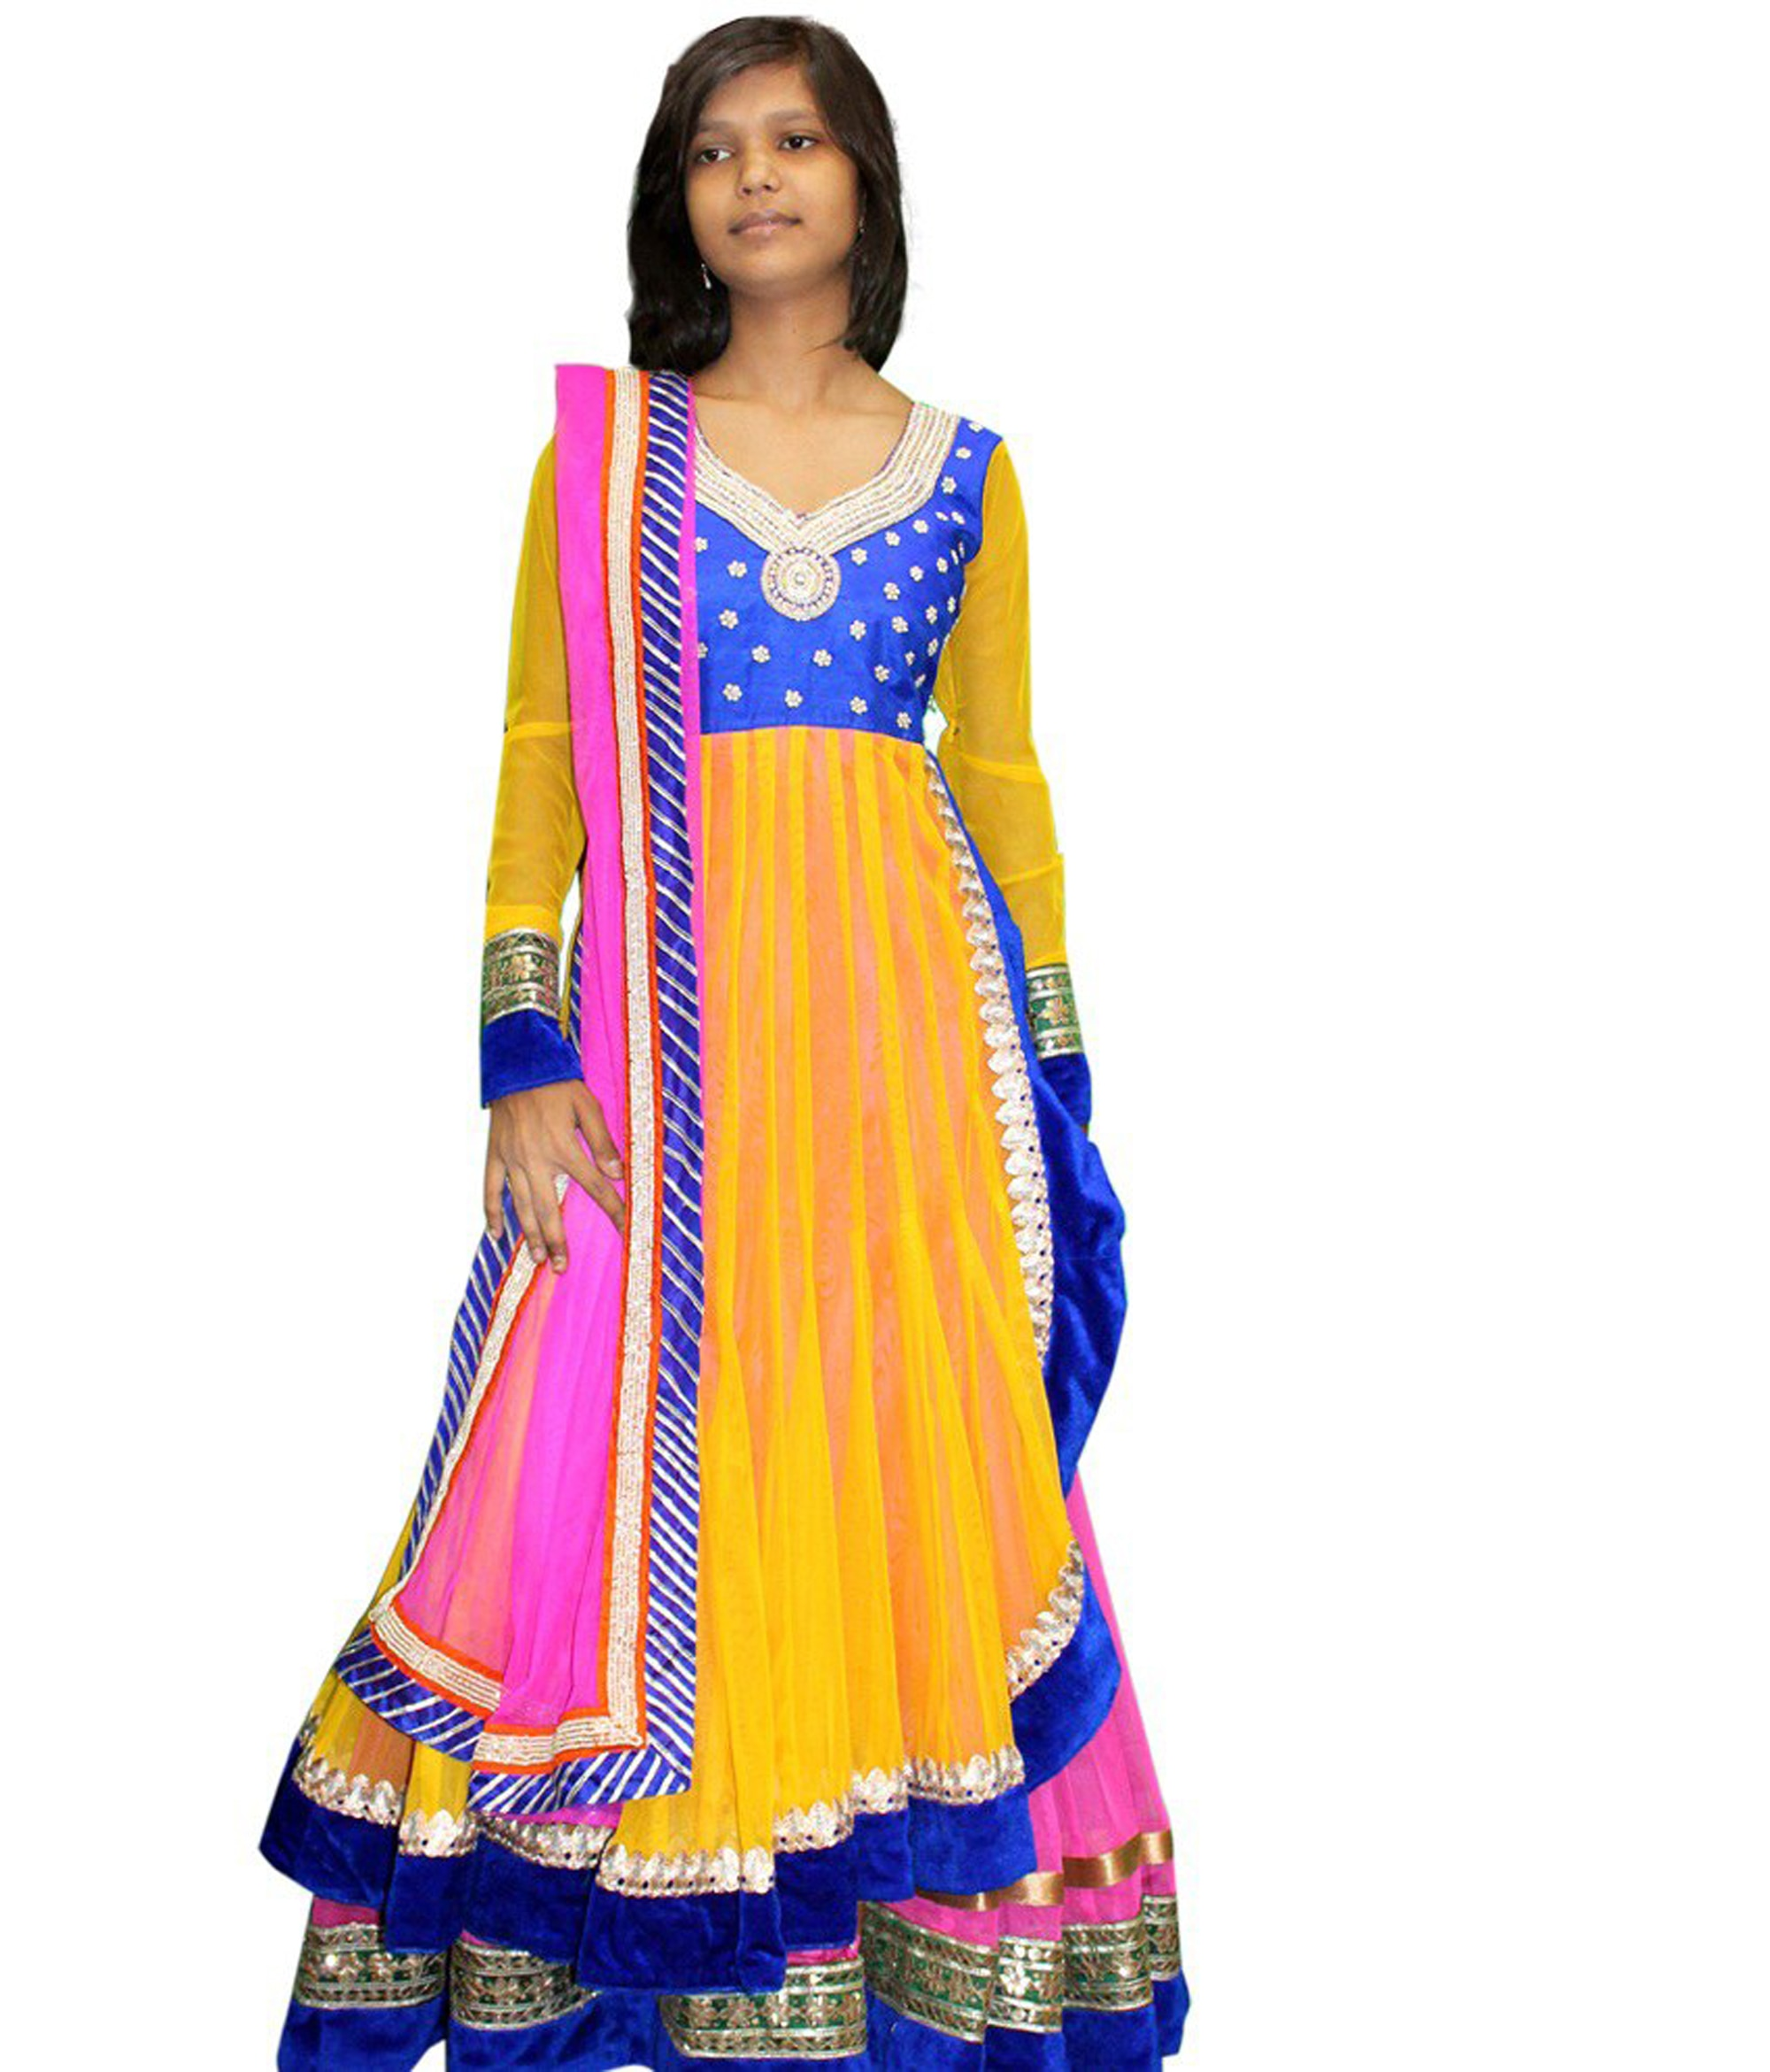 An absolute stunner from the house of panisha handcrafted designer wear  comes to you in the form of this rich yellow and royal blue coloured indowestern . Inspired from traditional handwork all over the blouse , this double layered indowestern with designer handcrafted  lehenga flared outfit with a designer pink dupatta with handwork all over it  adds a touch of class to your wardrobe.Perfect when worn with some antique silver jewellery. whatsapp no - 9530053233 plot no 13 opposite cazri main gate iti road jodhpur